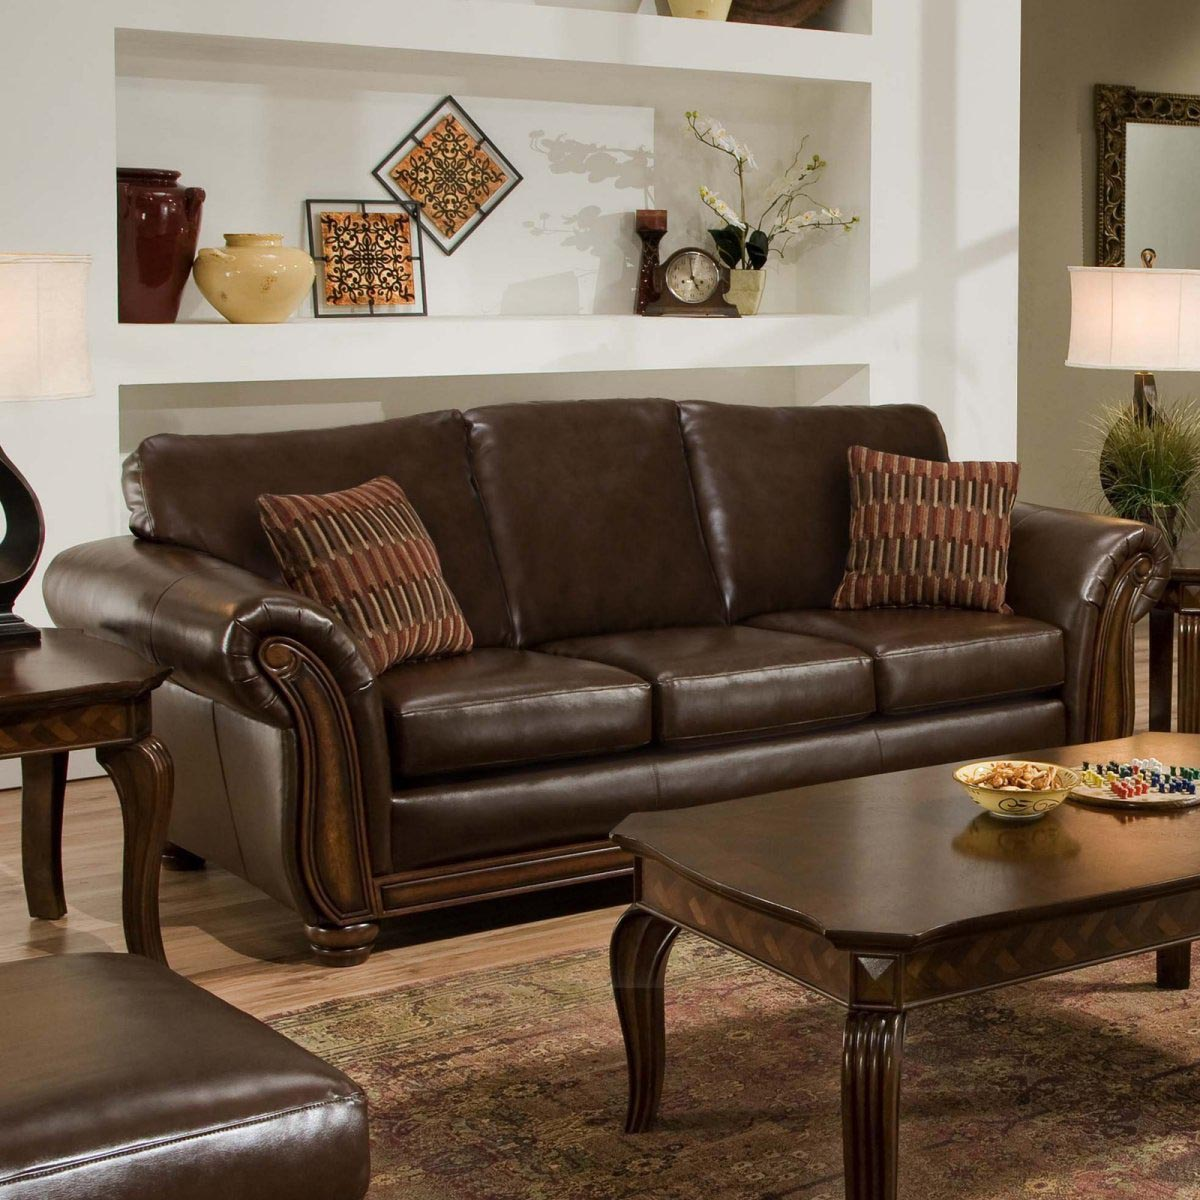 Throw Pillows For A Brown Leather Couch : Throw Pillows For Brown Sofa Best Decor Things